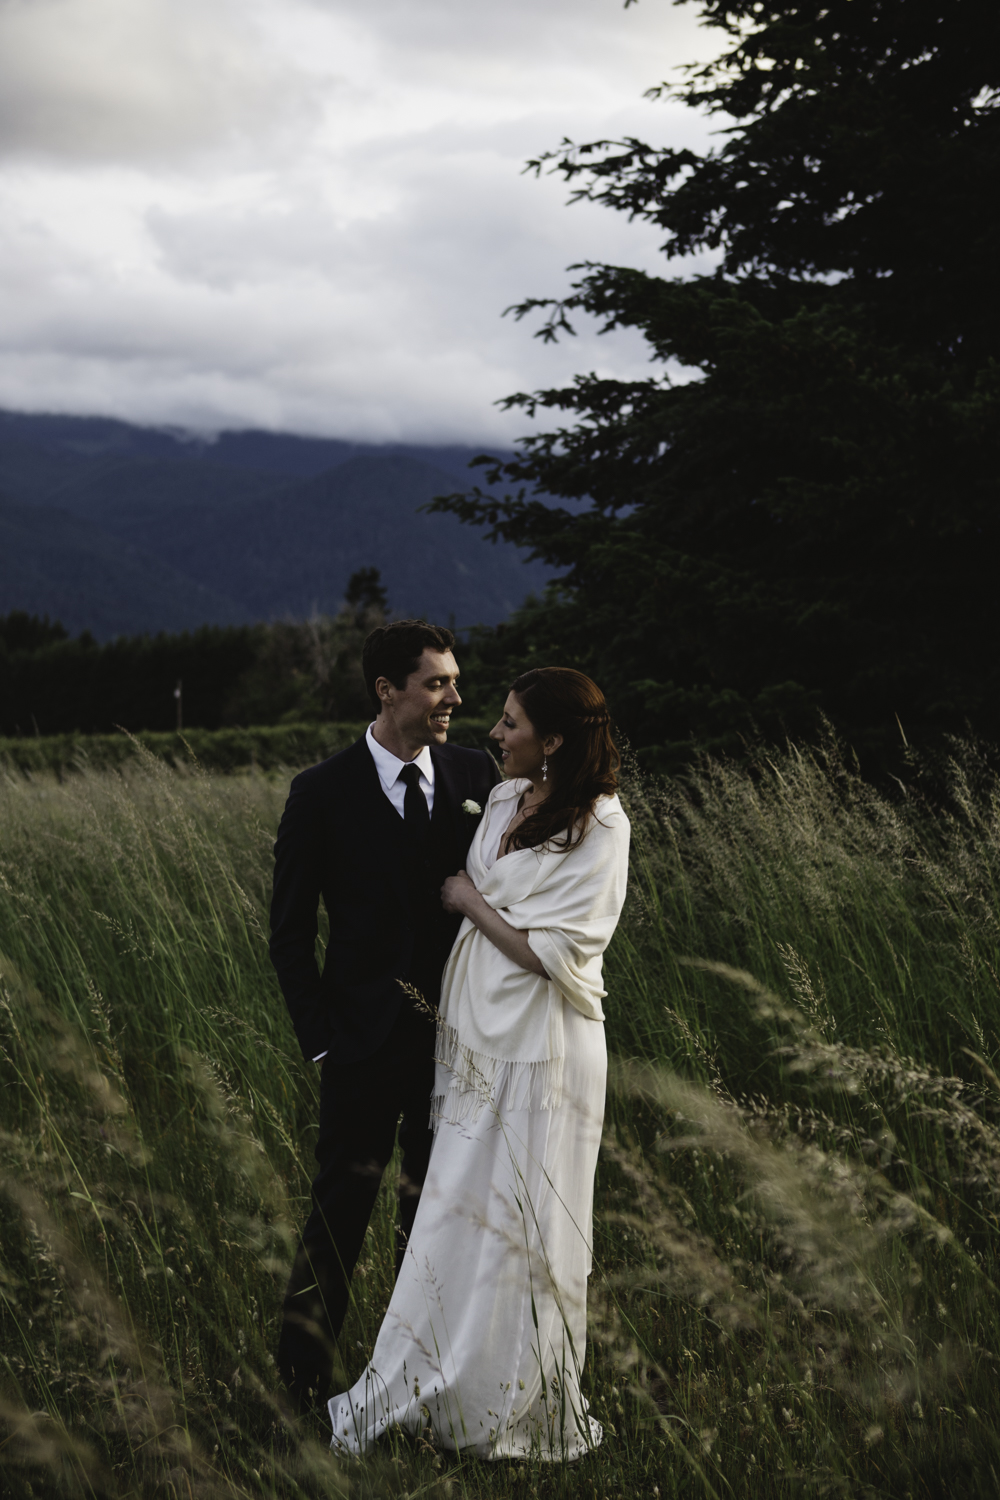 sarah-danielle-photography-intimate-wedding-photographer-244.jpg